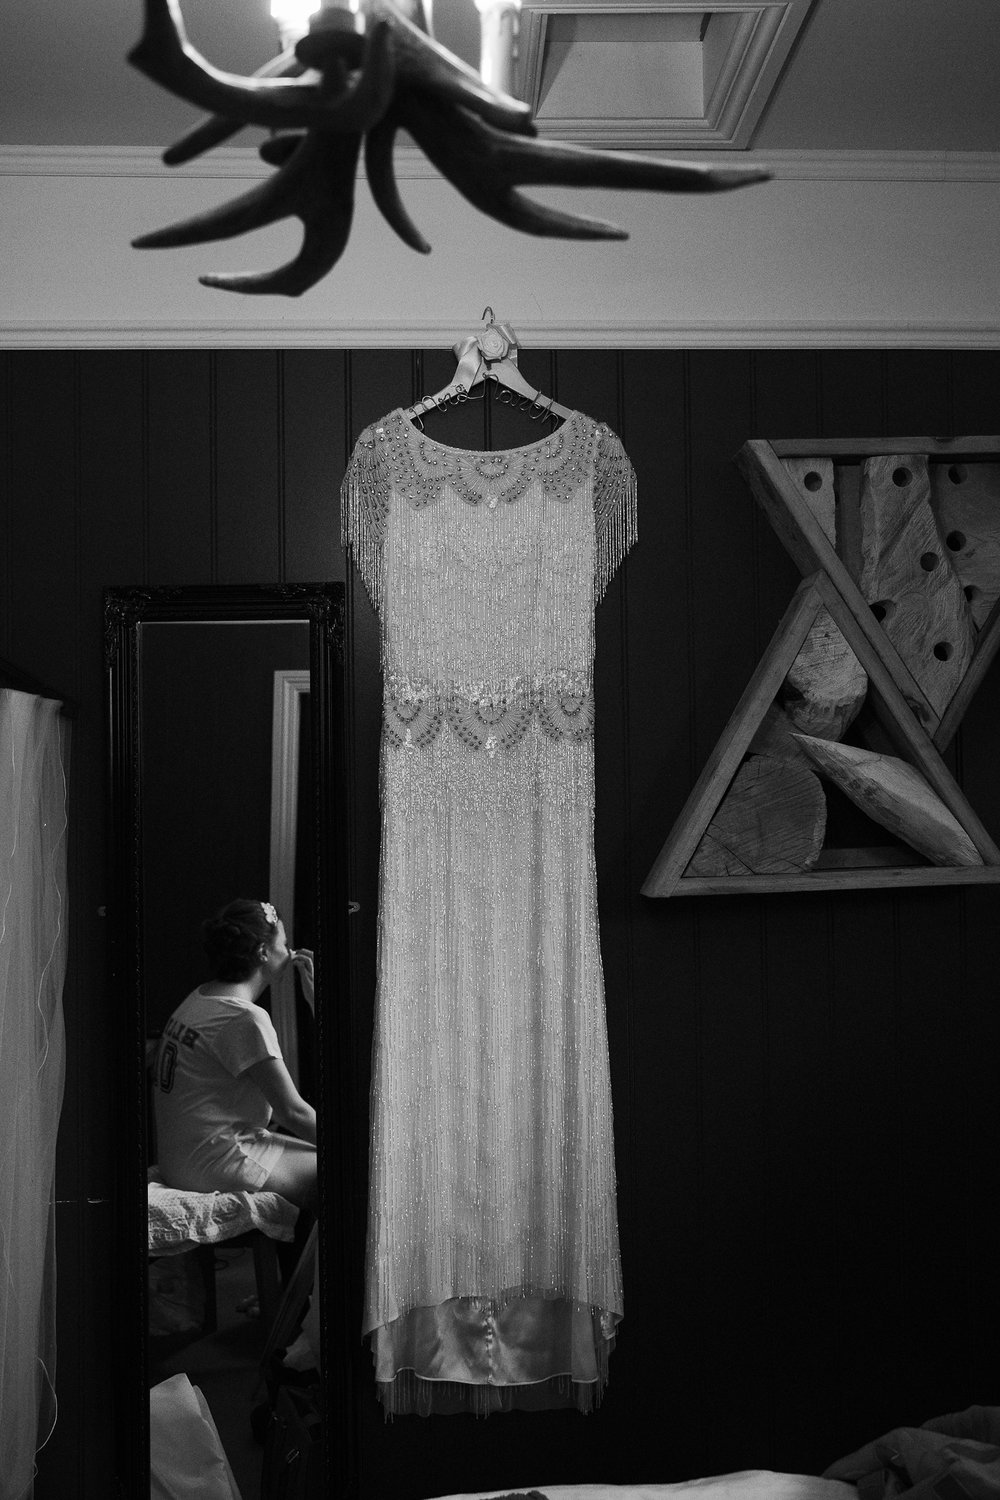 Balckand white photo of wedding dress hanging in hotel room